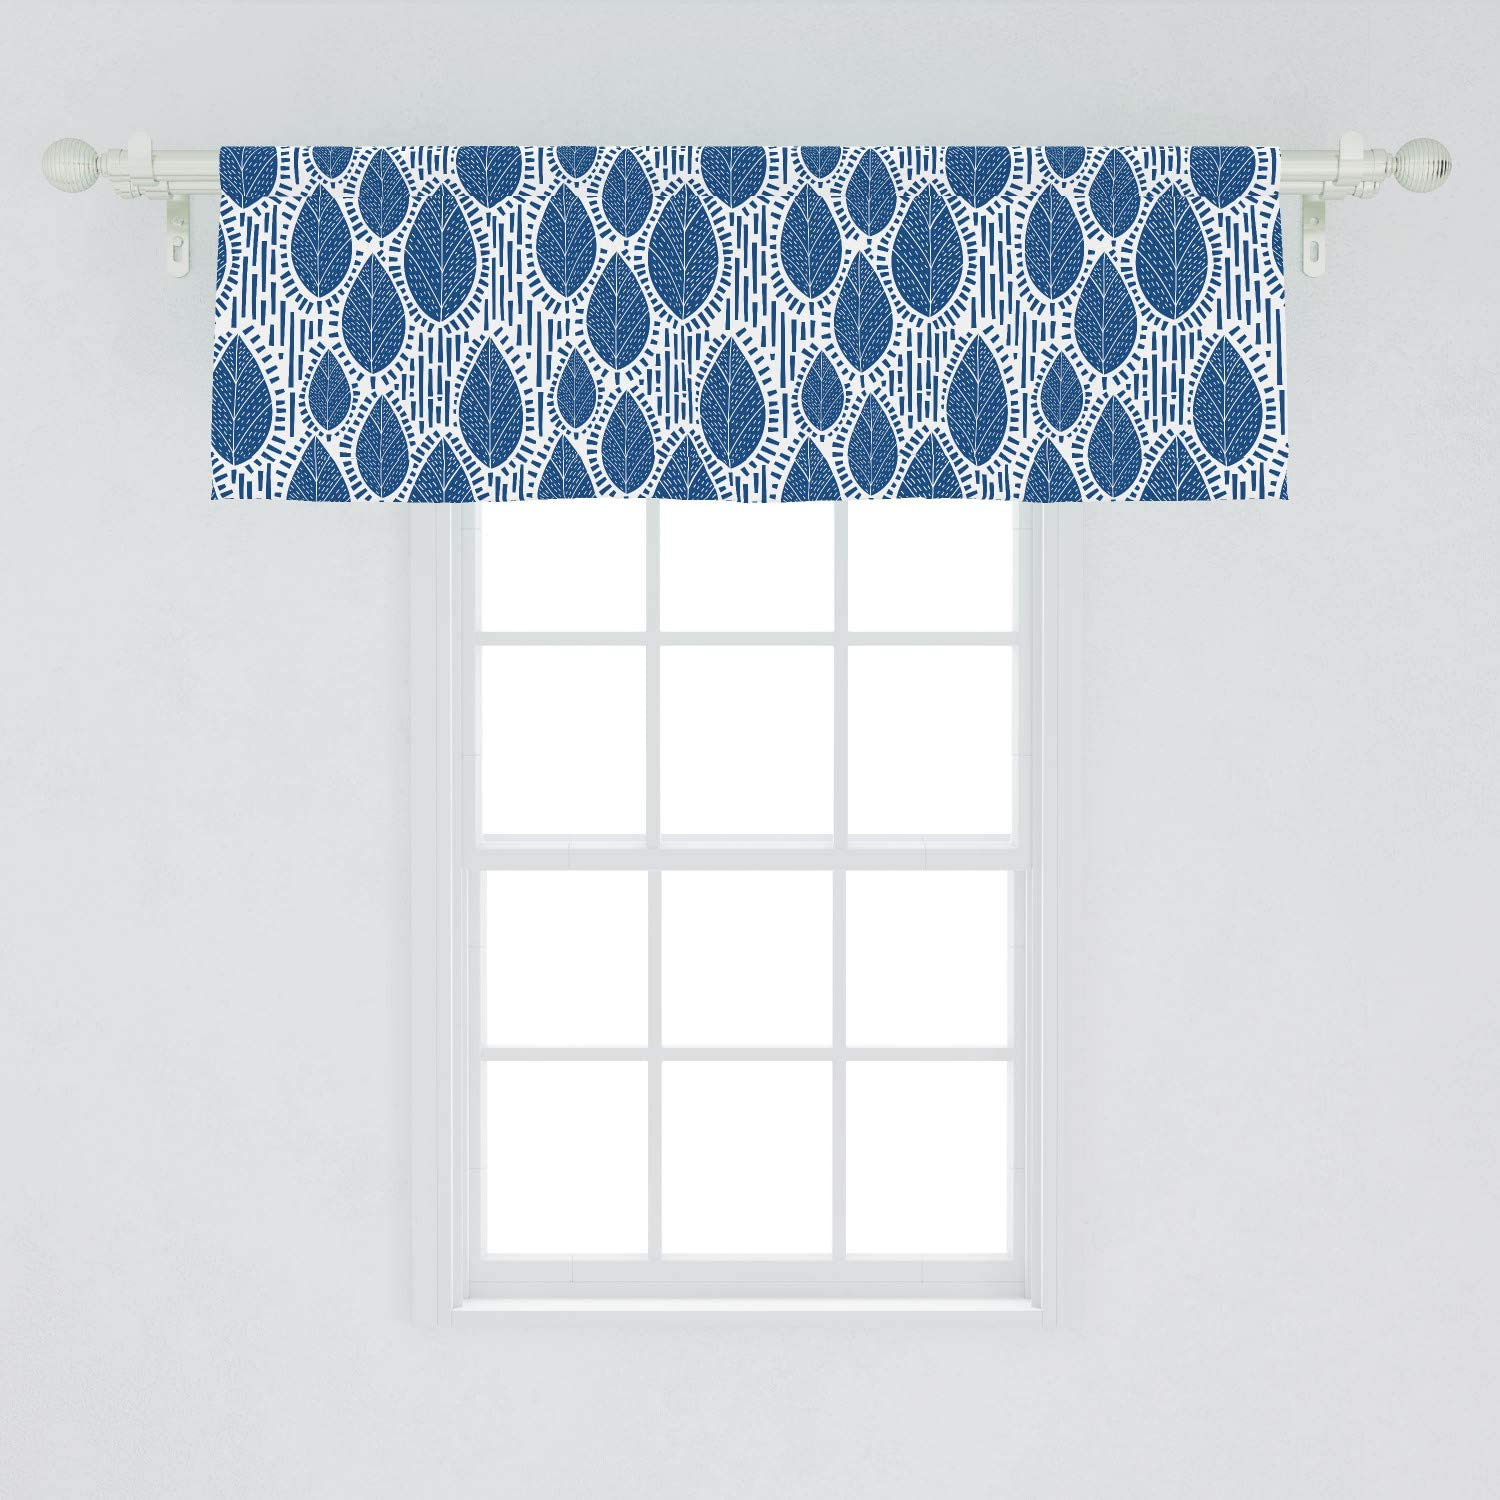 Lunarable Leaves Window Valance, Scandinavian Inspired Design of Leafy Motifs with Strokes and Stripes, Curtain Valance for Kitchen Bedroom Decor with Rod Pocket, 54